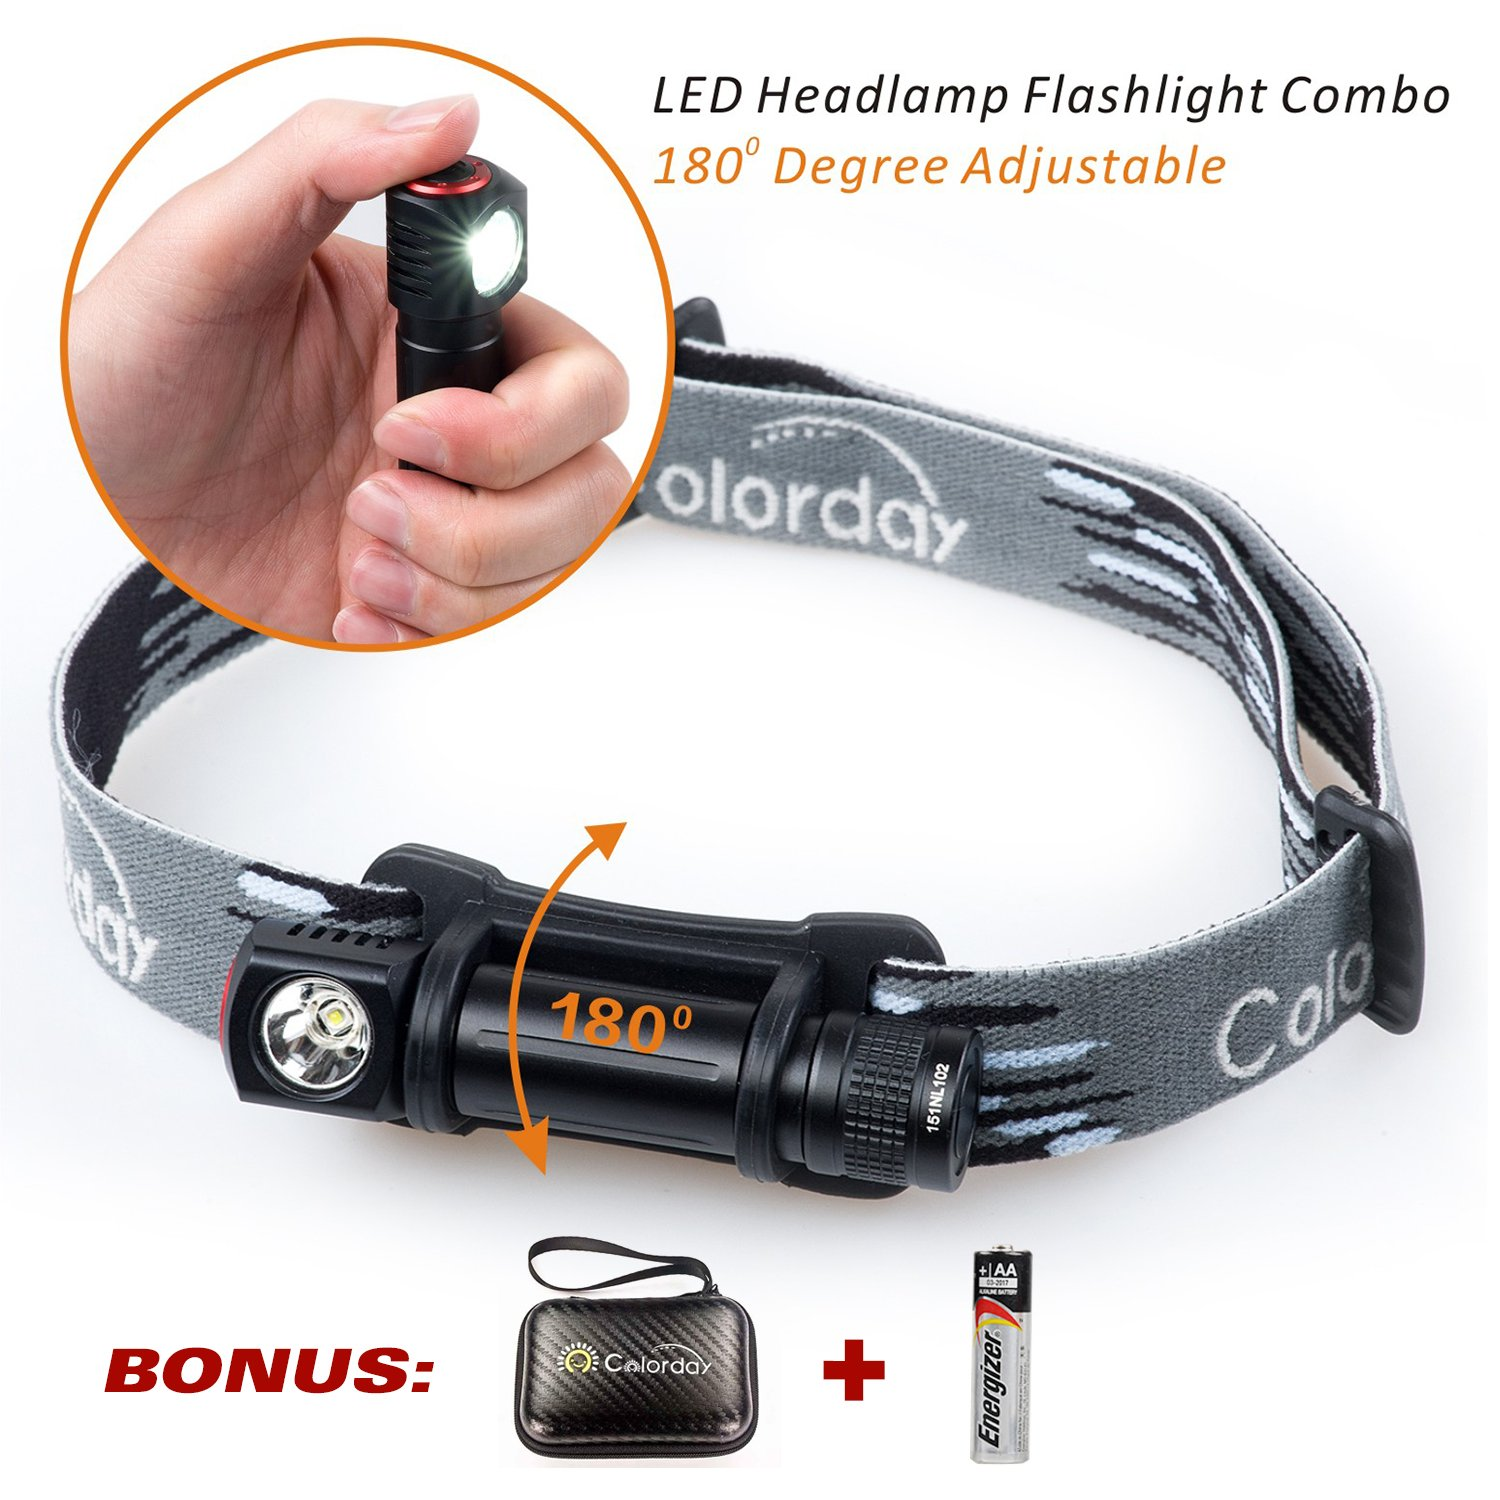 2 in 1 LED Headlamp Flashlight Combo, 150 Lumens, Ultralight Waterproof, 1.2oz,Compact, Full-metal body, for Running, Camping Hiking, Cycling, Kids,ONLY 1 AA battery req Incl 1 Energizer AA.COLORDAY